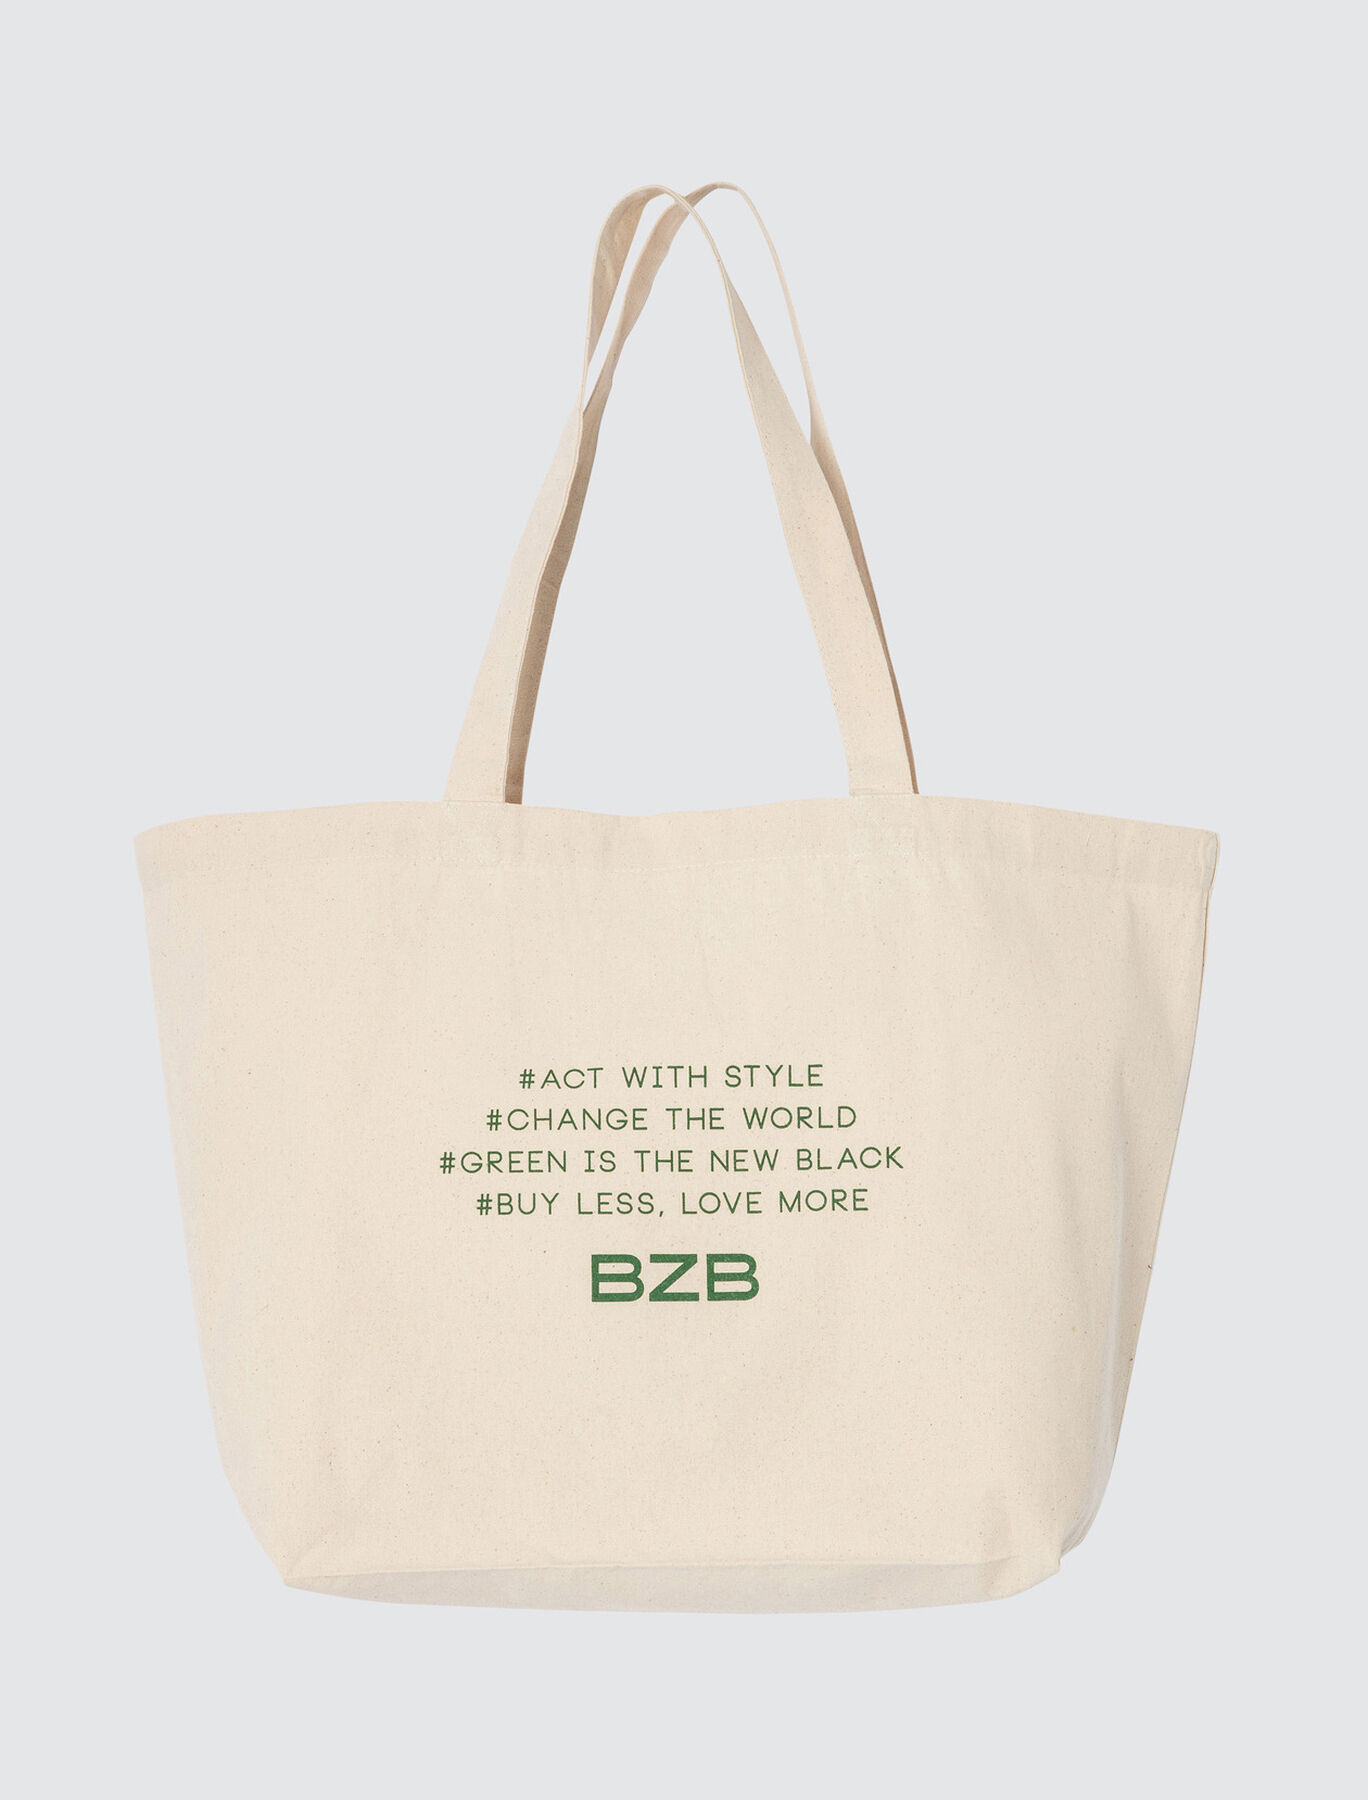 Tote bag #act for style